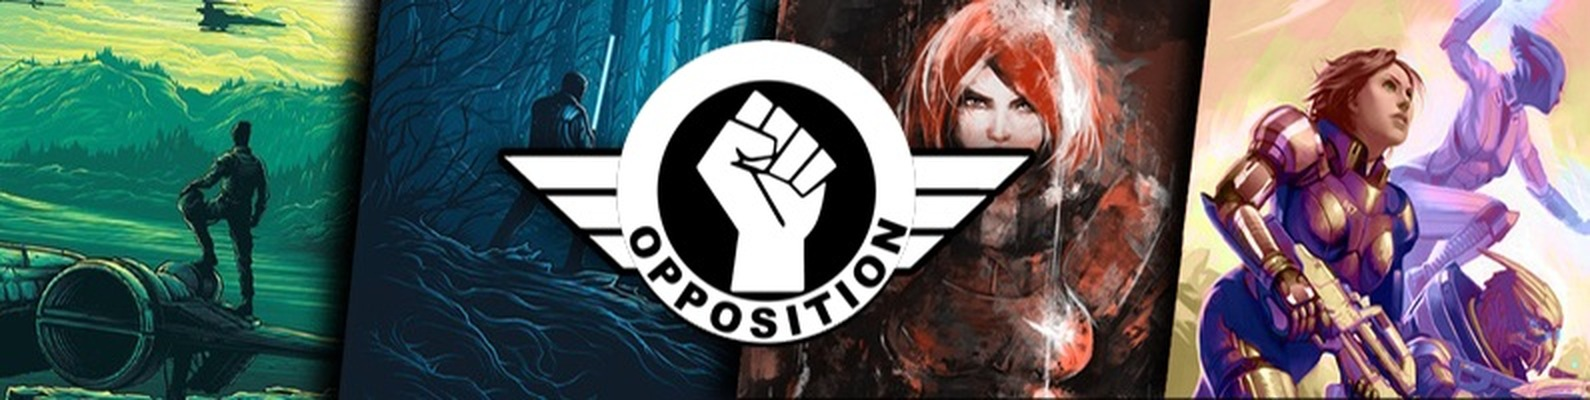 OPPOSITION TEAM - Mods and Community | ВКонтакте